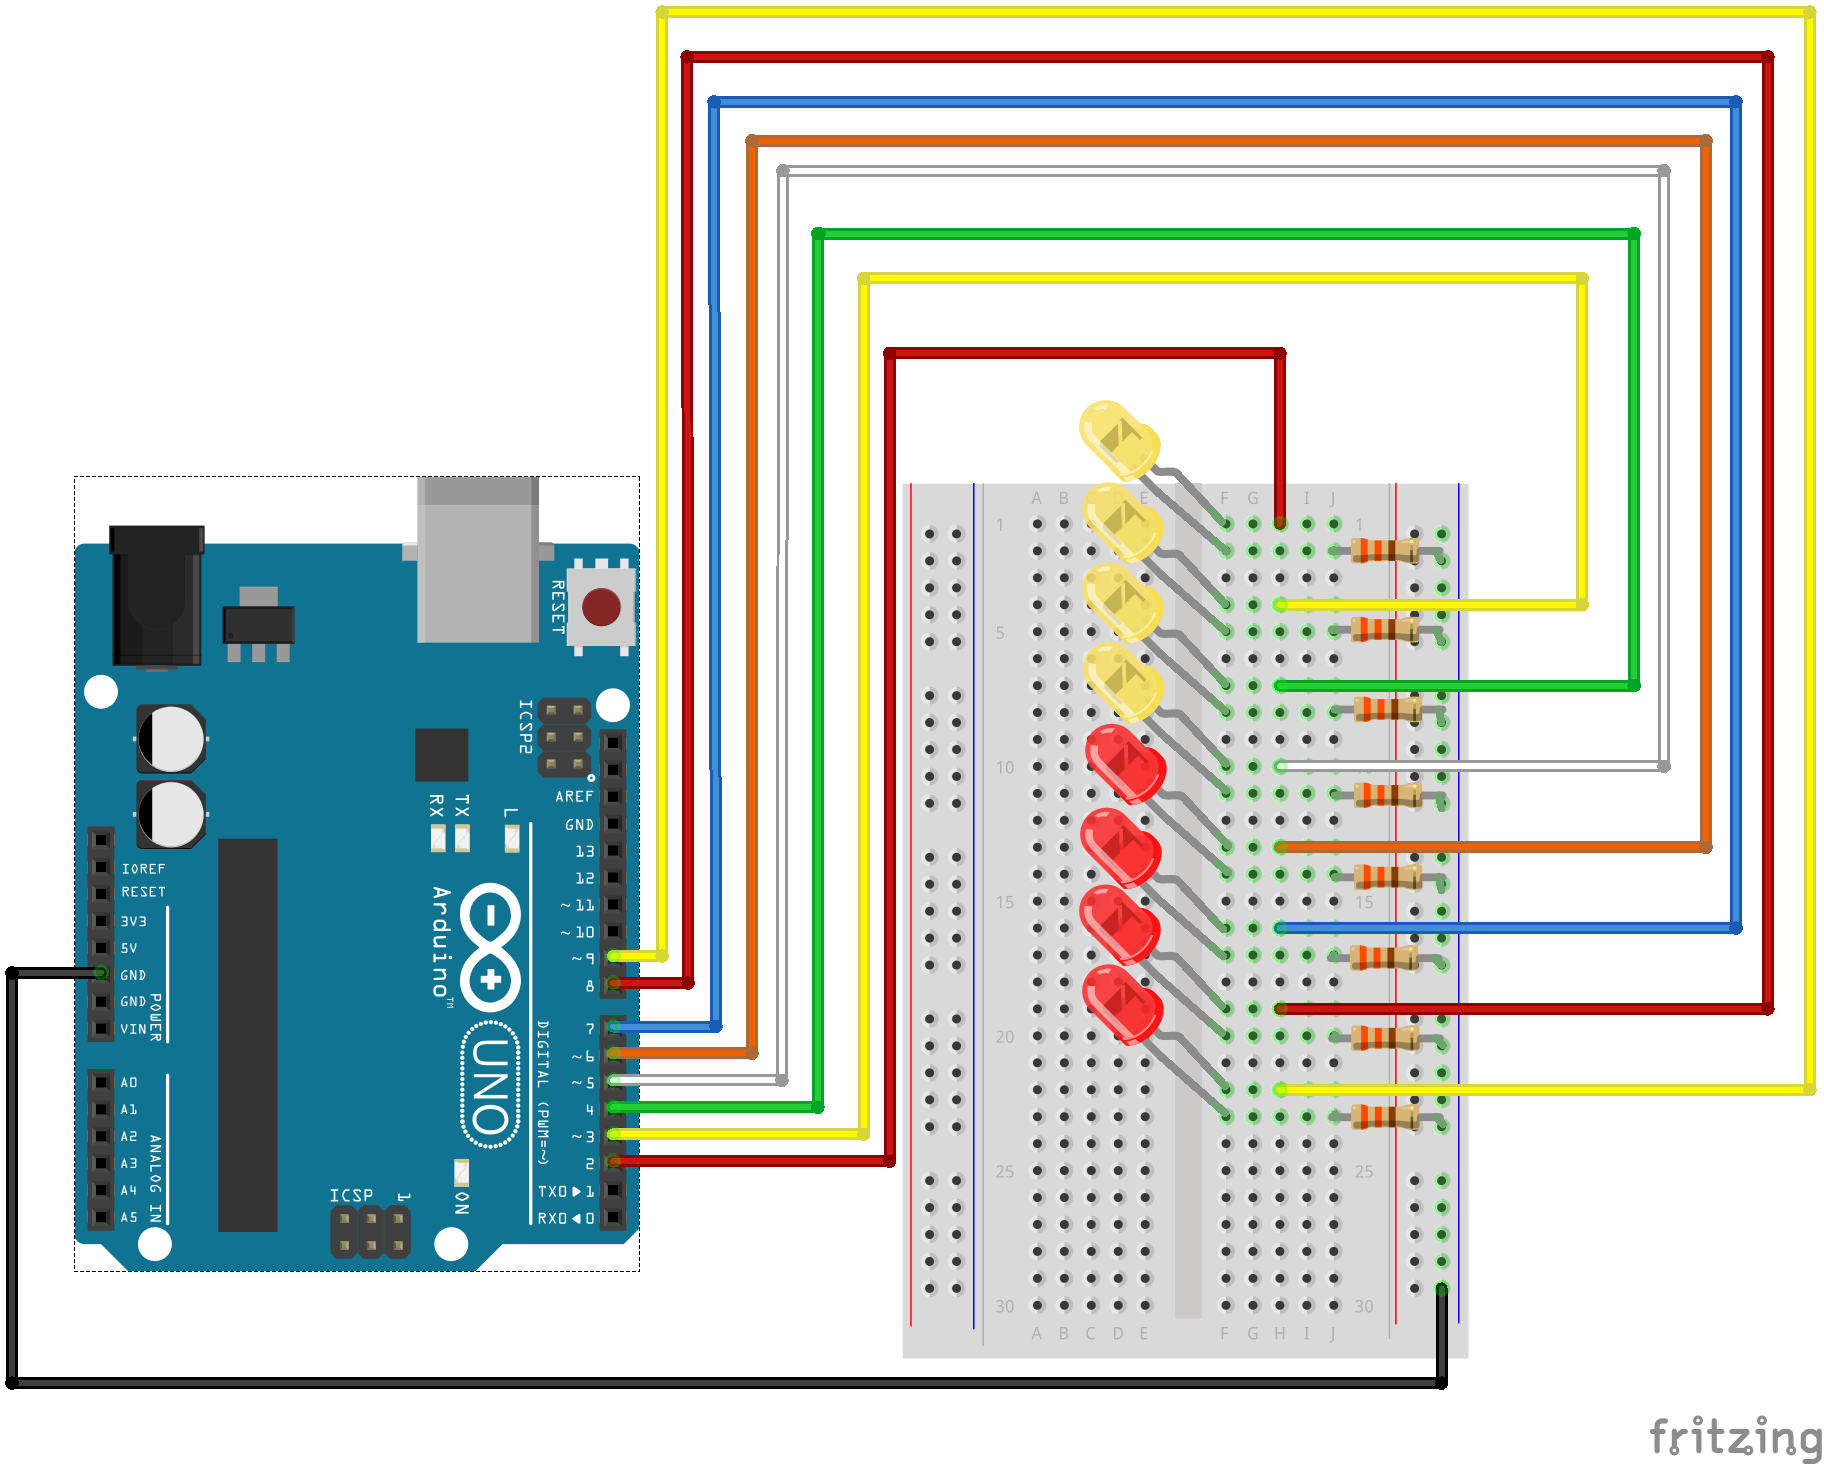 fritzing diagram for arduino  alt text